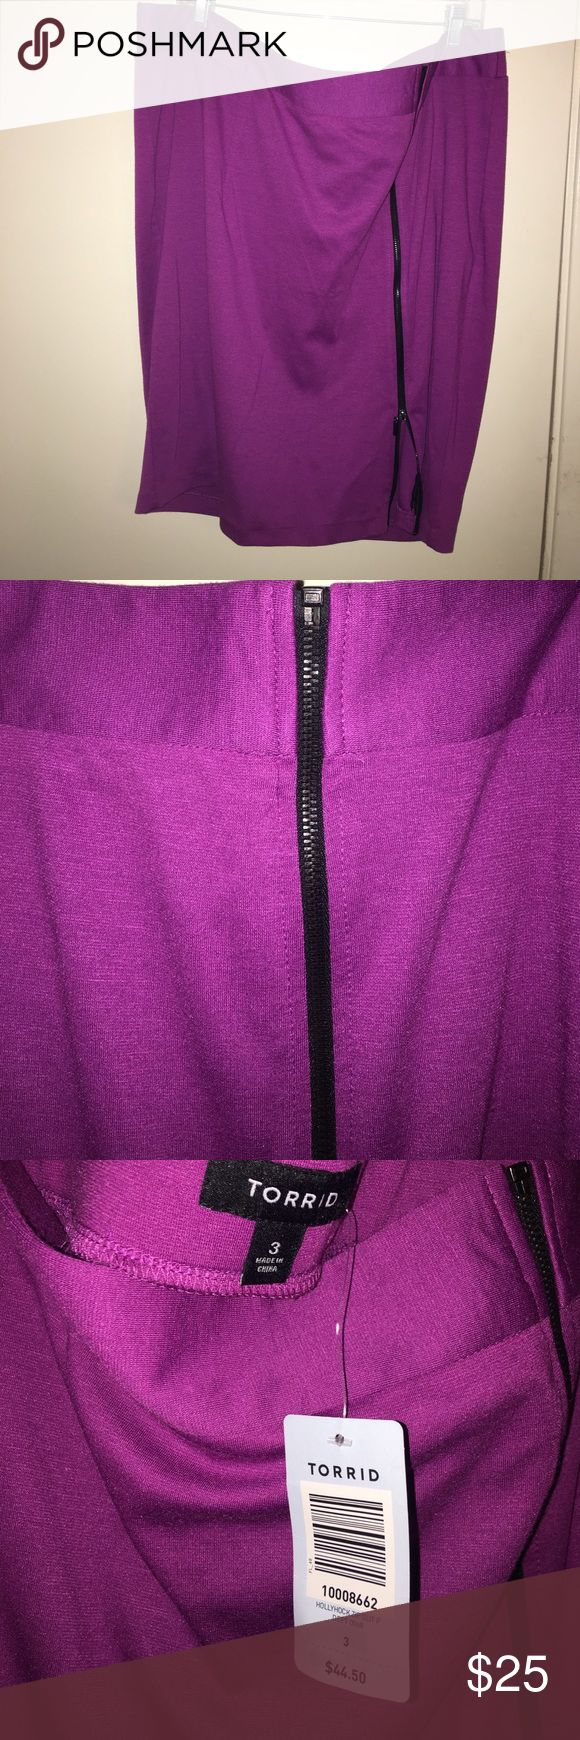 Torrid. Purple pencil skirt. Size 3X Cute purple pencil skirt with. Black zipper detail down the front. Never worn. Still has tags. Size 3X torrid Skirts Pencil